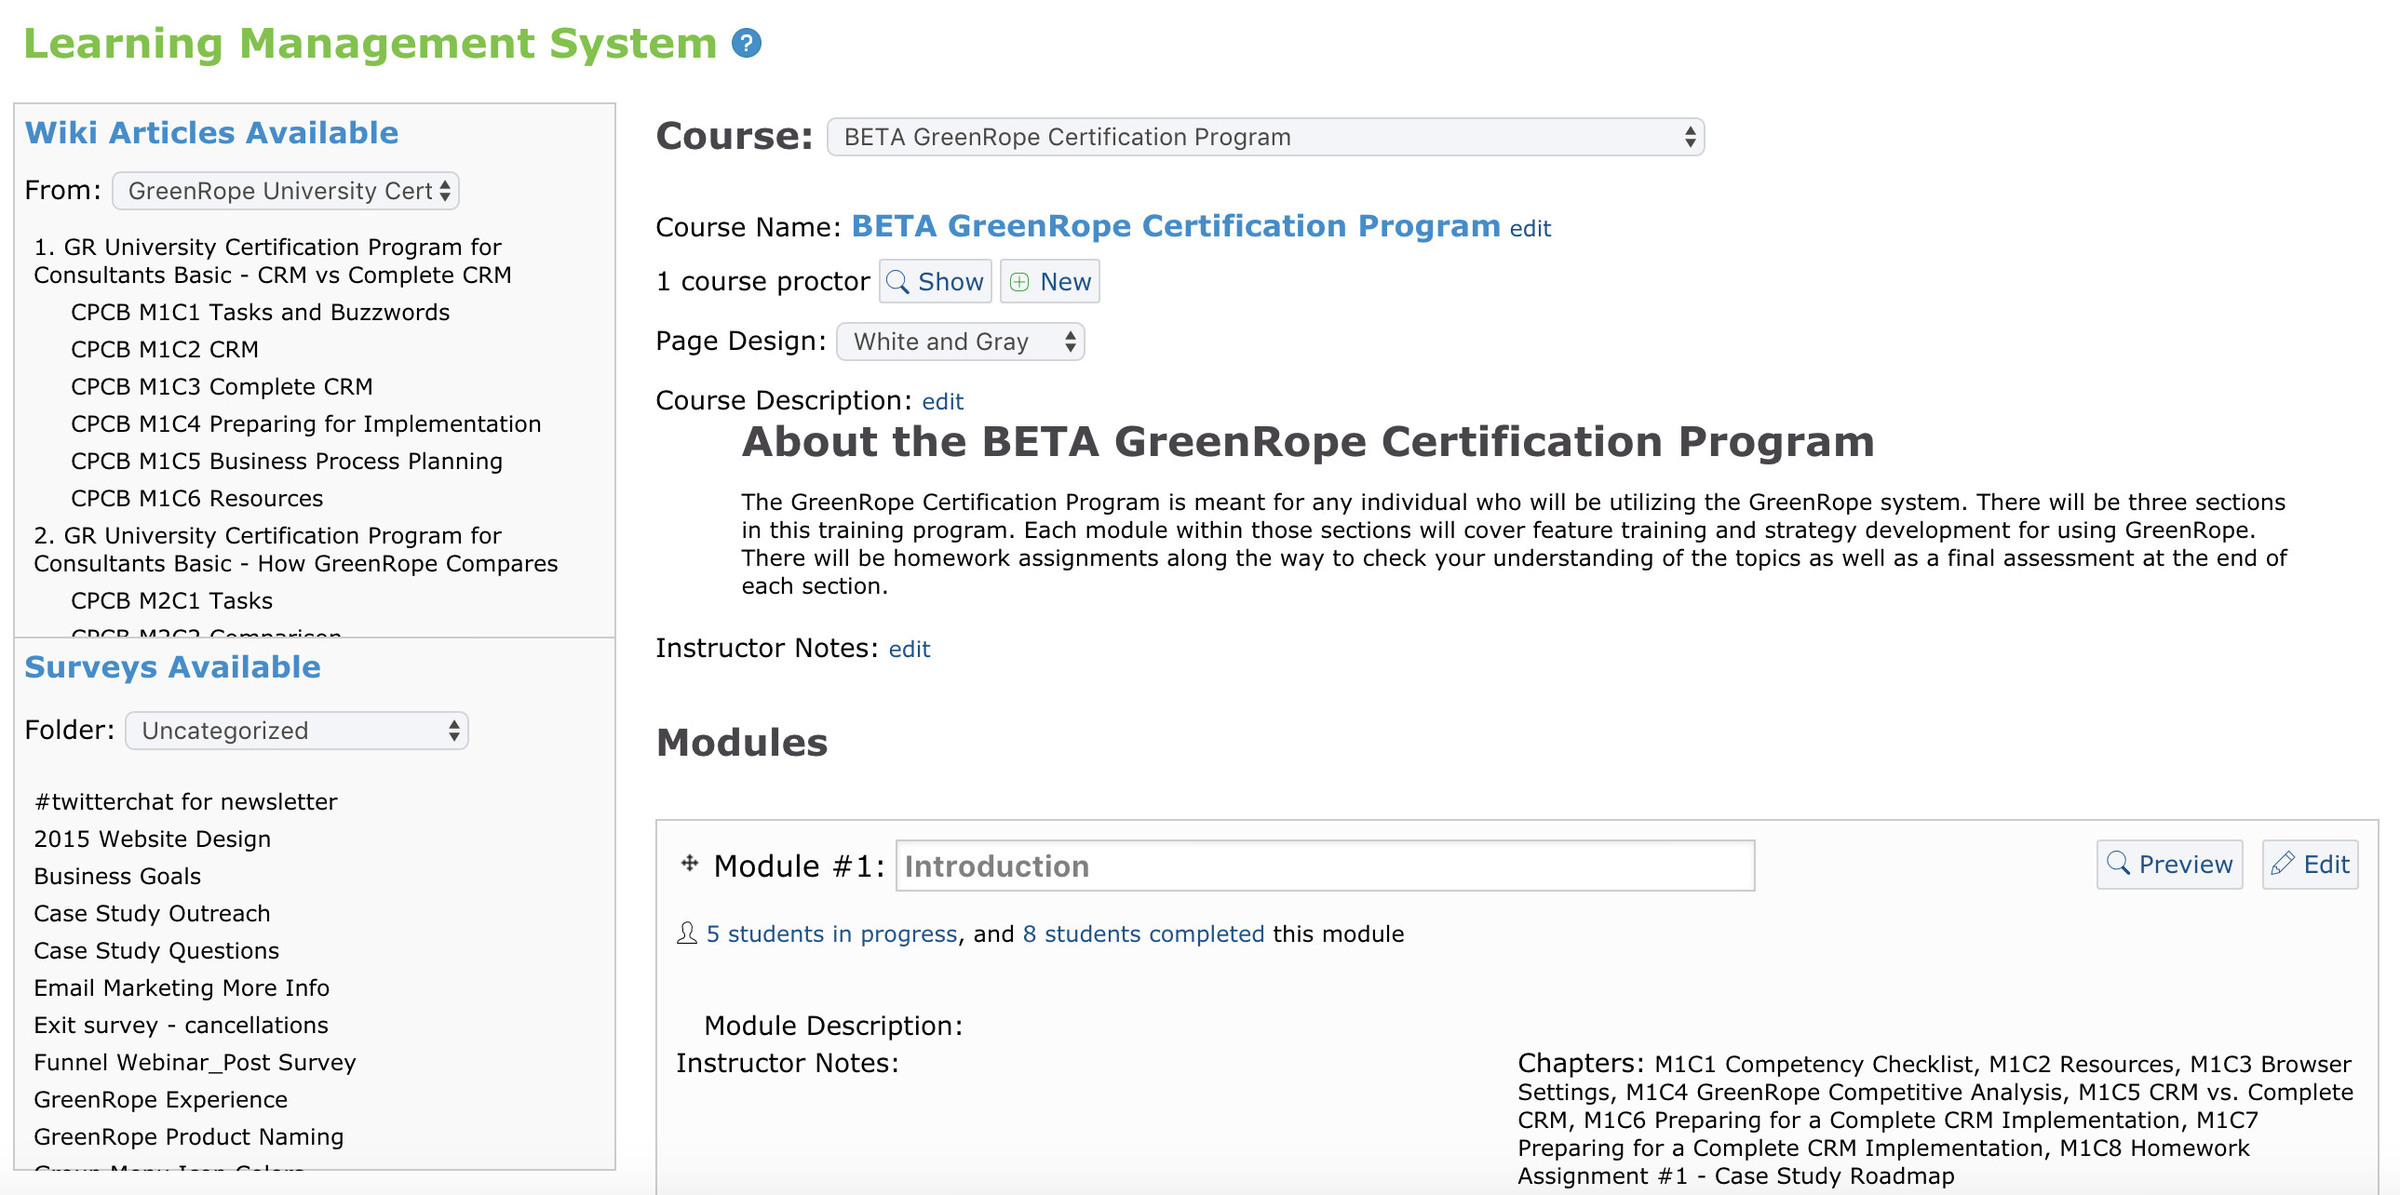 GreenRopes Learning Management System